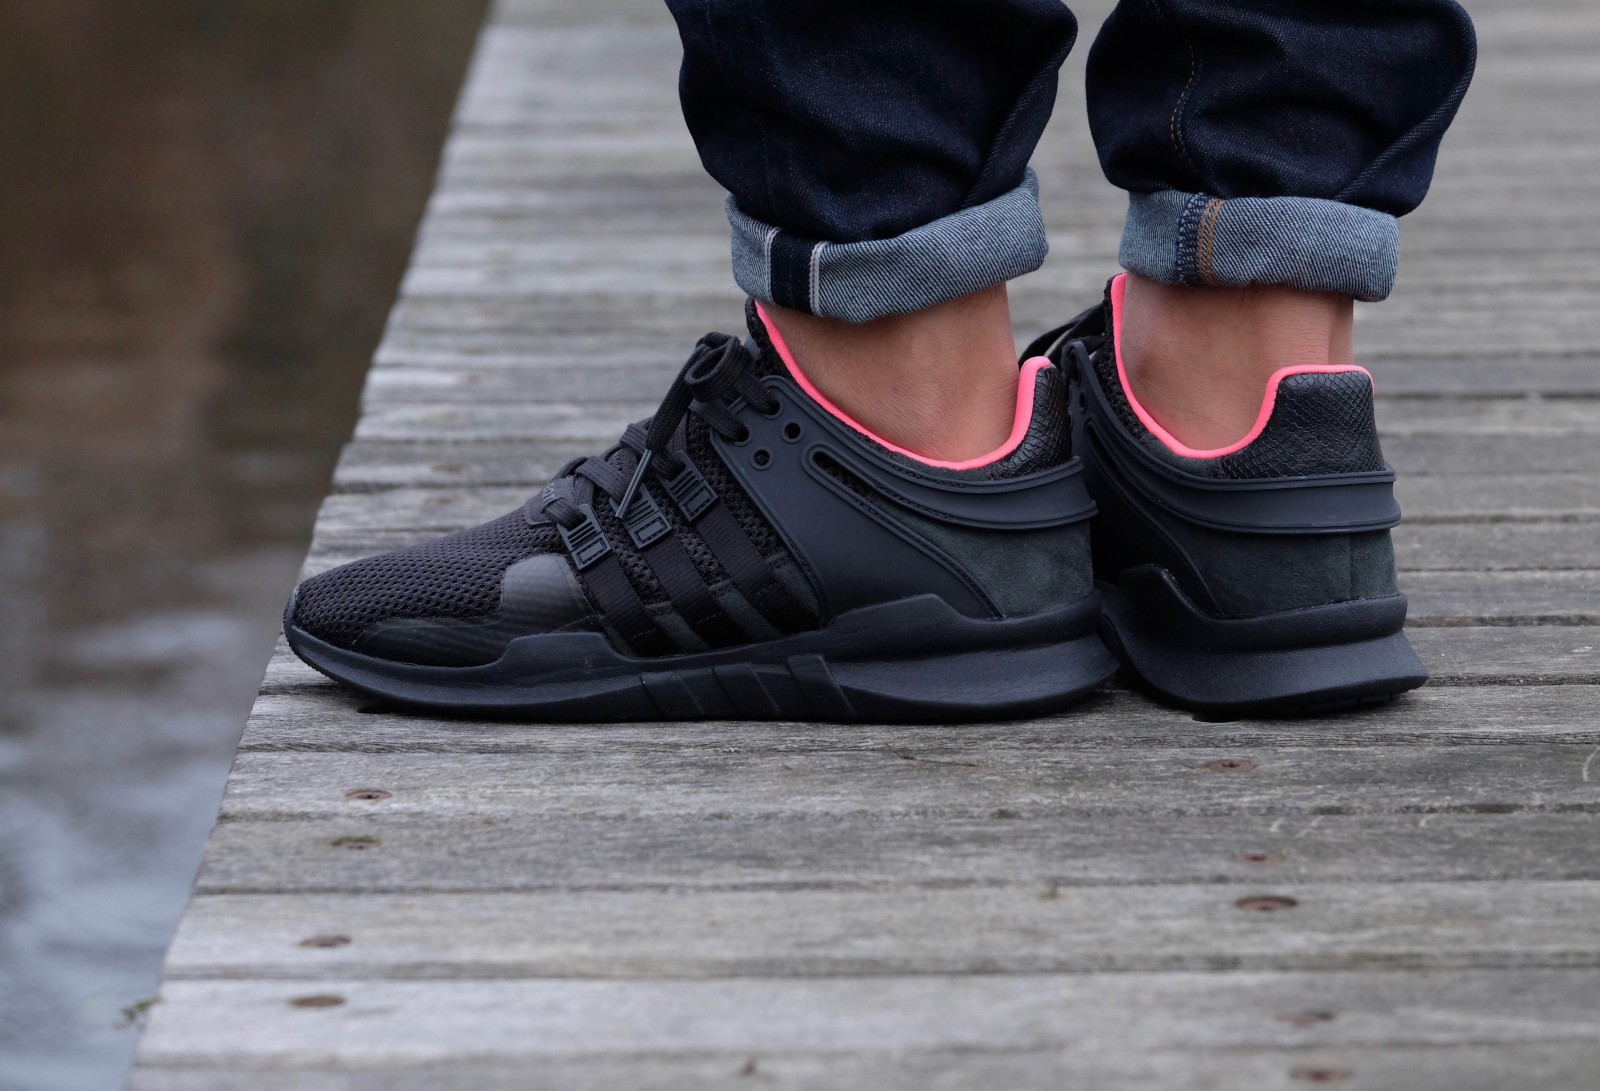 the best attitude 5b6ab 70d88 Adidas Originals EQT Support 9317 Glitch Camo Core BlackWhit